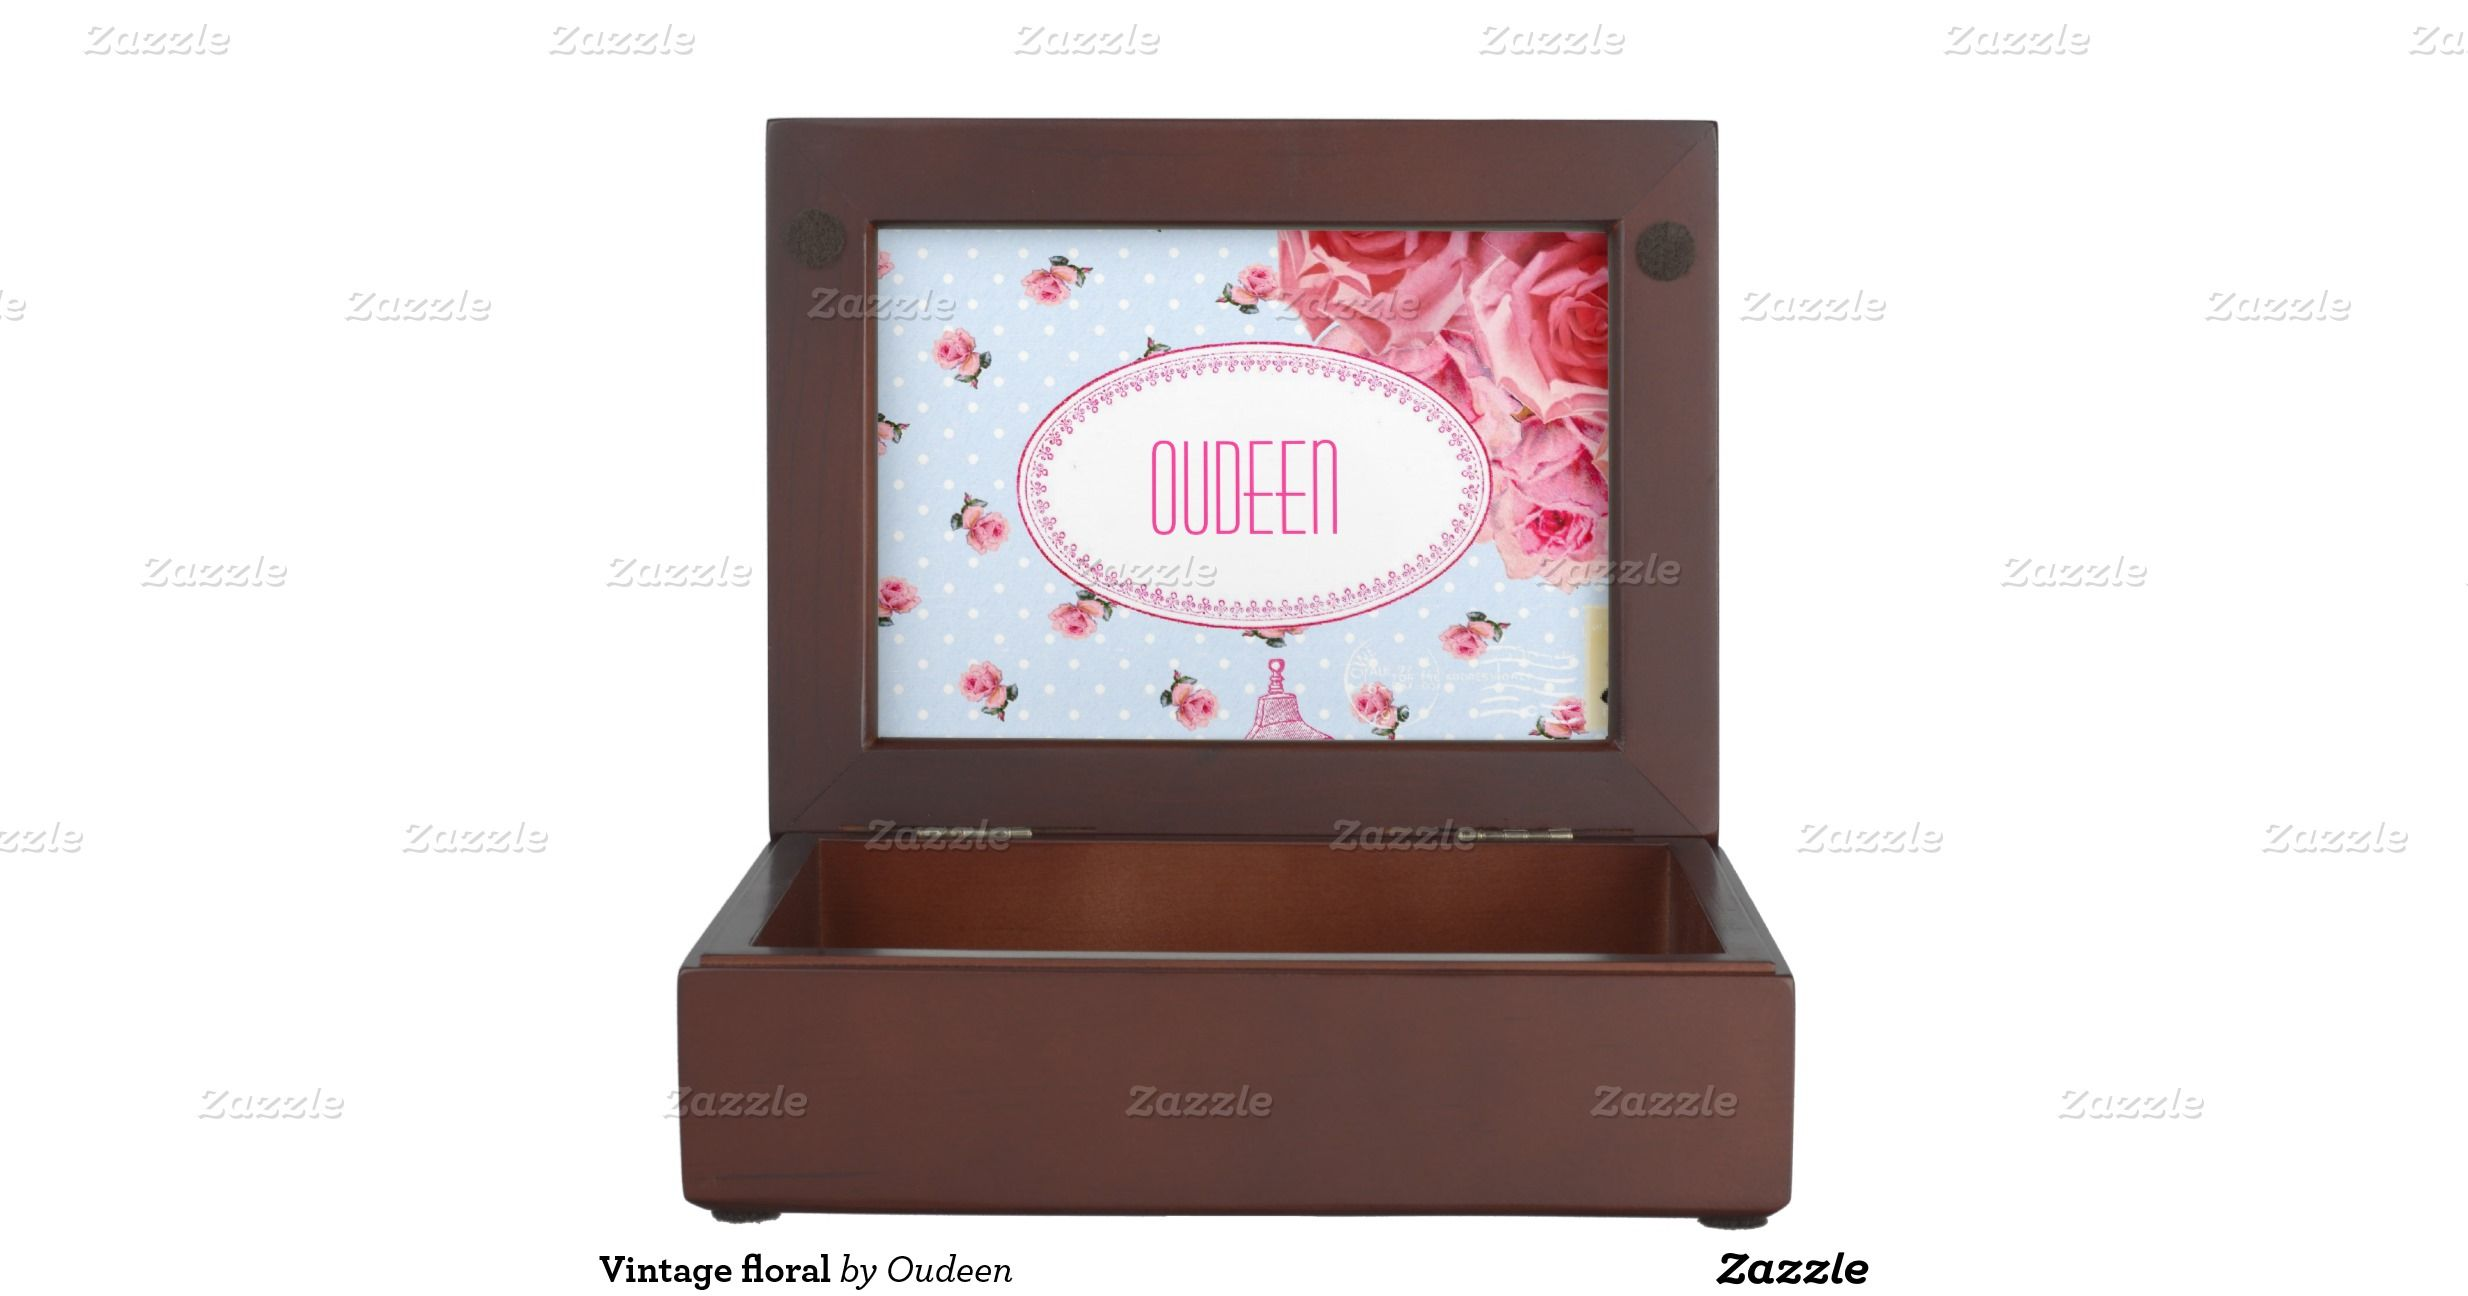 Vintage floral memory boxes #zazzle #gifts #inspiration #floral #shabbychic #vintag